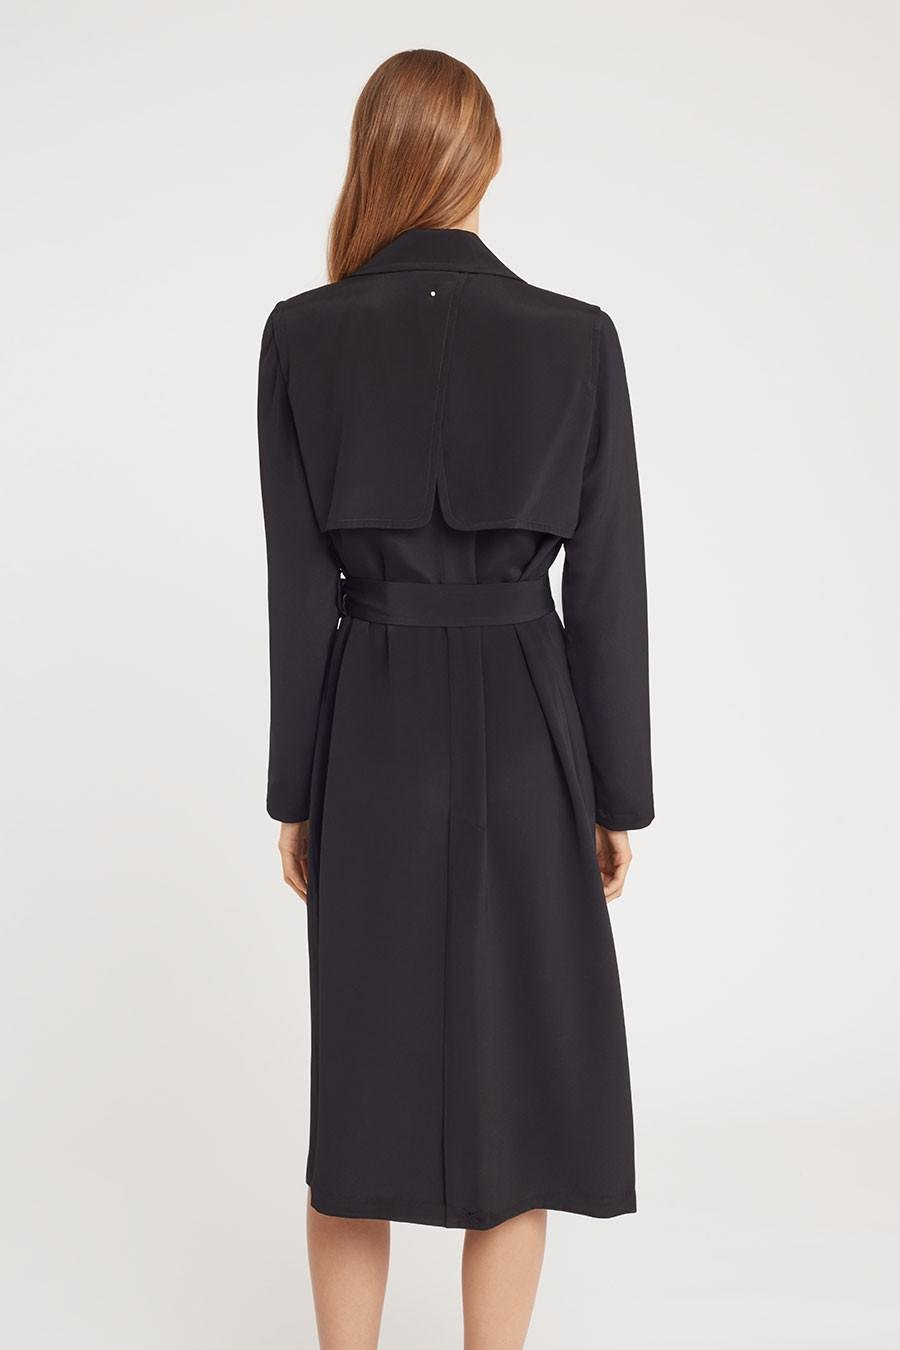 Women's Silk Classic Trench in Black | Size: 4